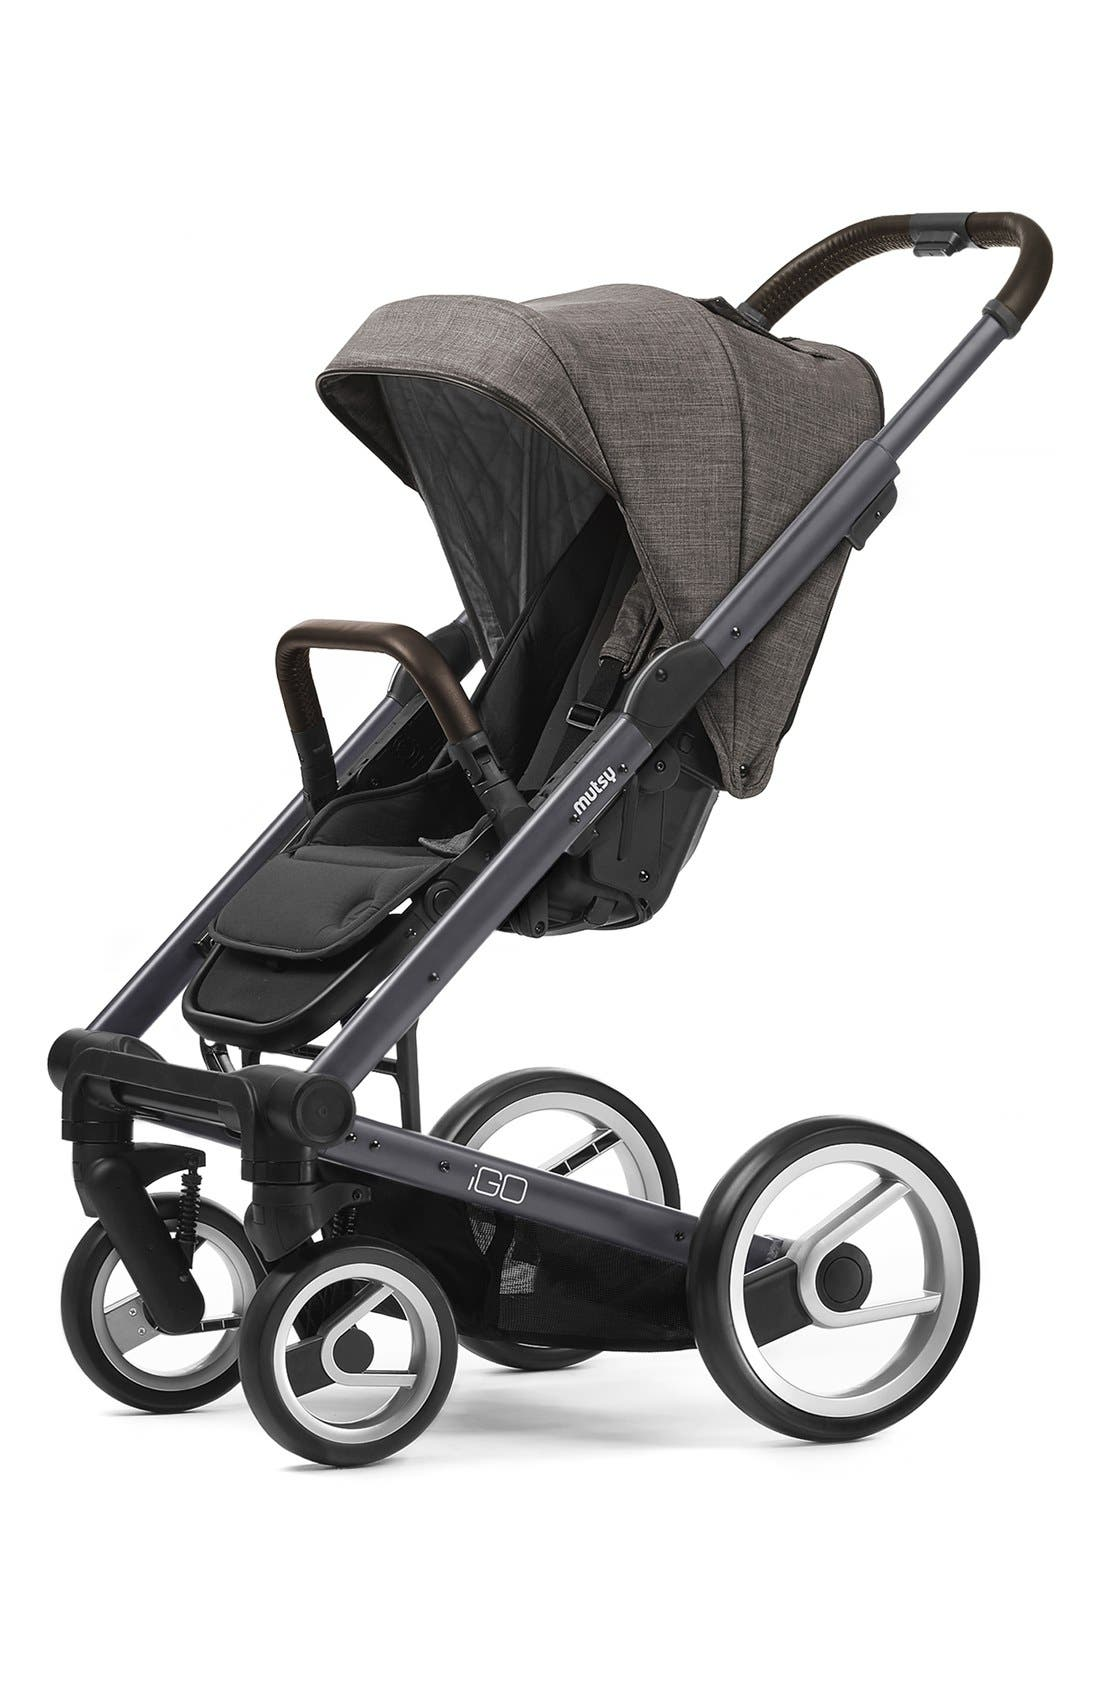 Mutsy 'Igo - Farmer Earth' Stroller